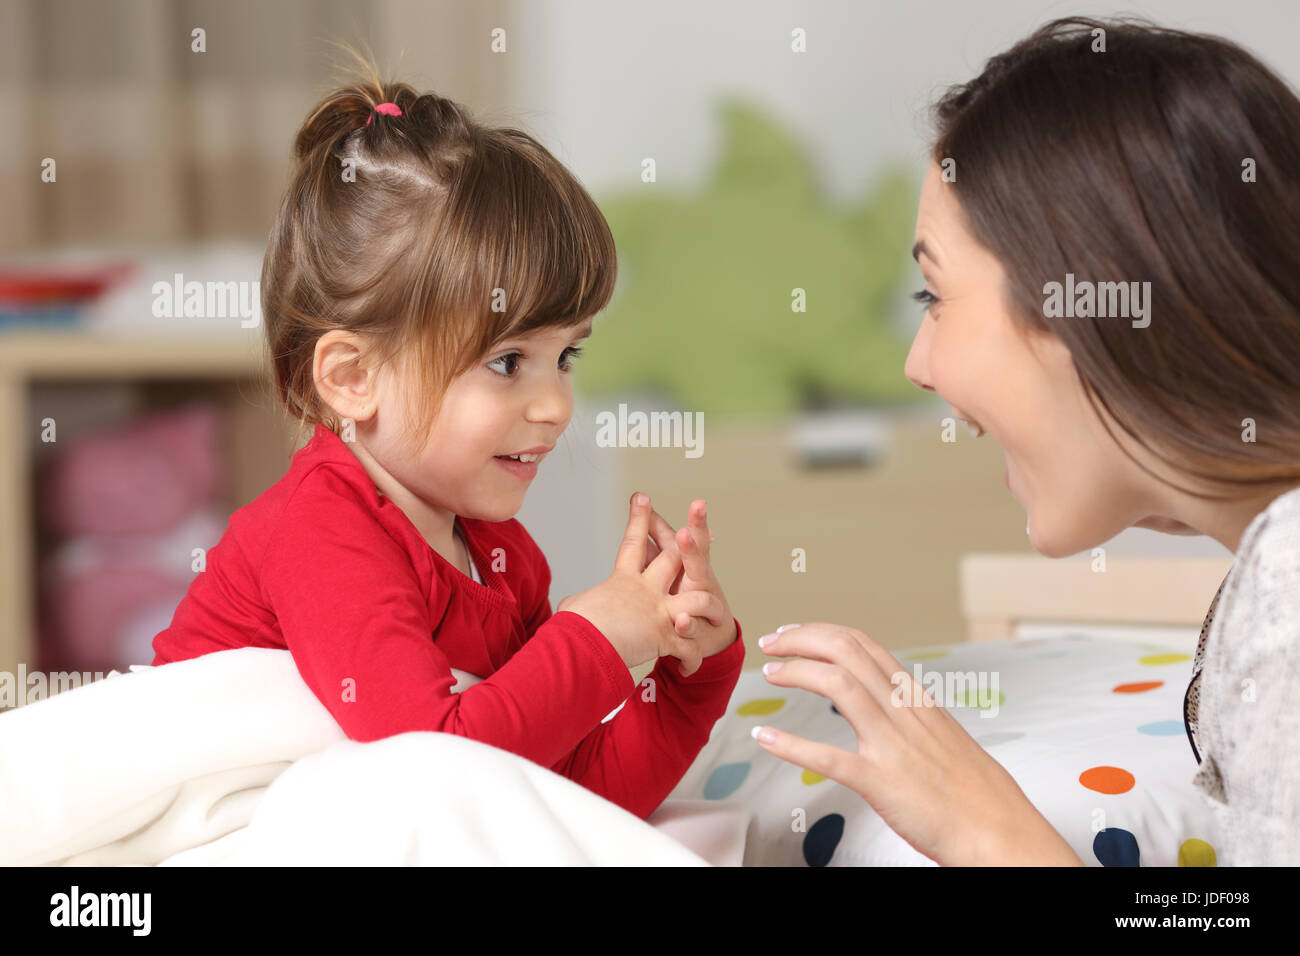 Mother and toddler wearing red shirt playing together on a bed in the bedroom at home - Stock Image